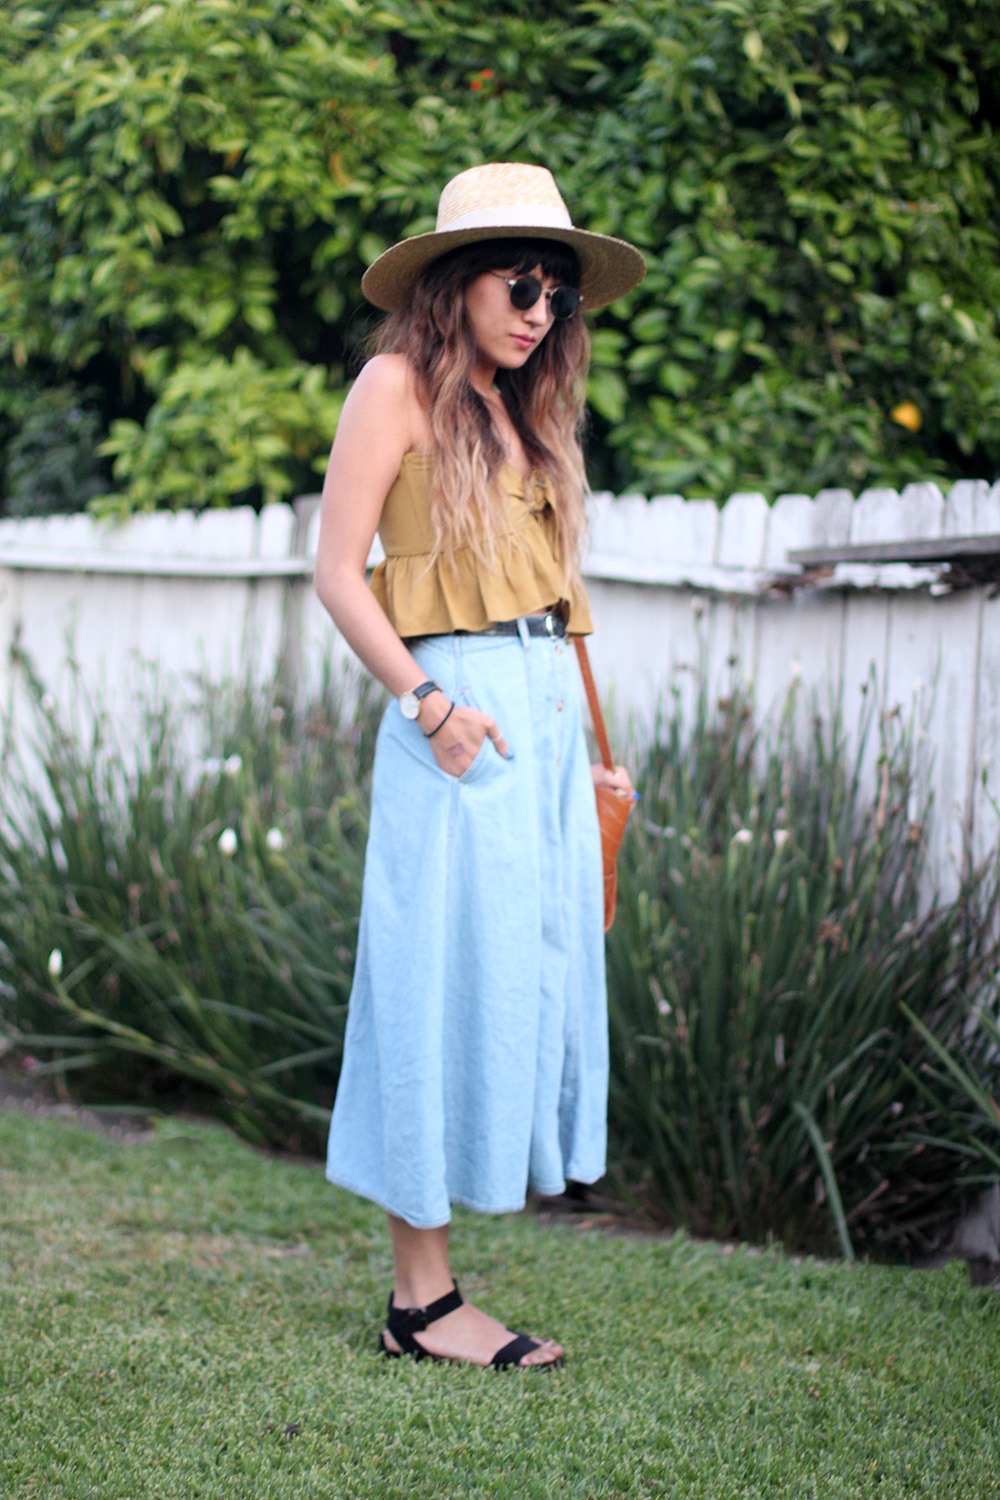 Stone Cold Fox Quixote Crop Top, vintage skirt, Brixton straw wide brim hat, Danielle Nicole Alexa bag, Daniel Wellington Watch